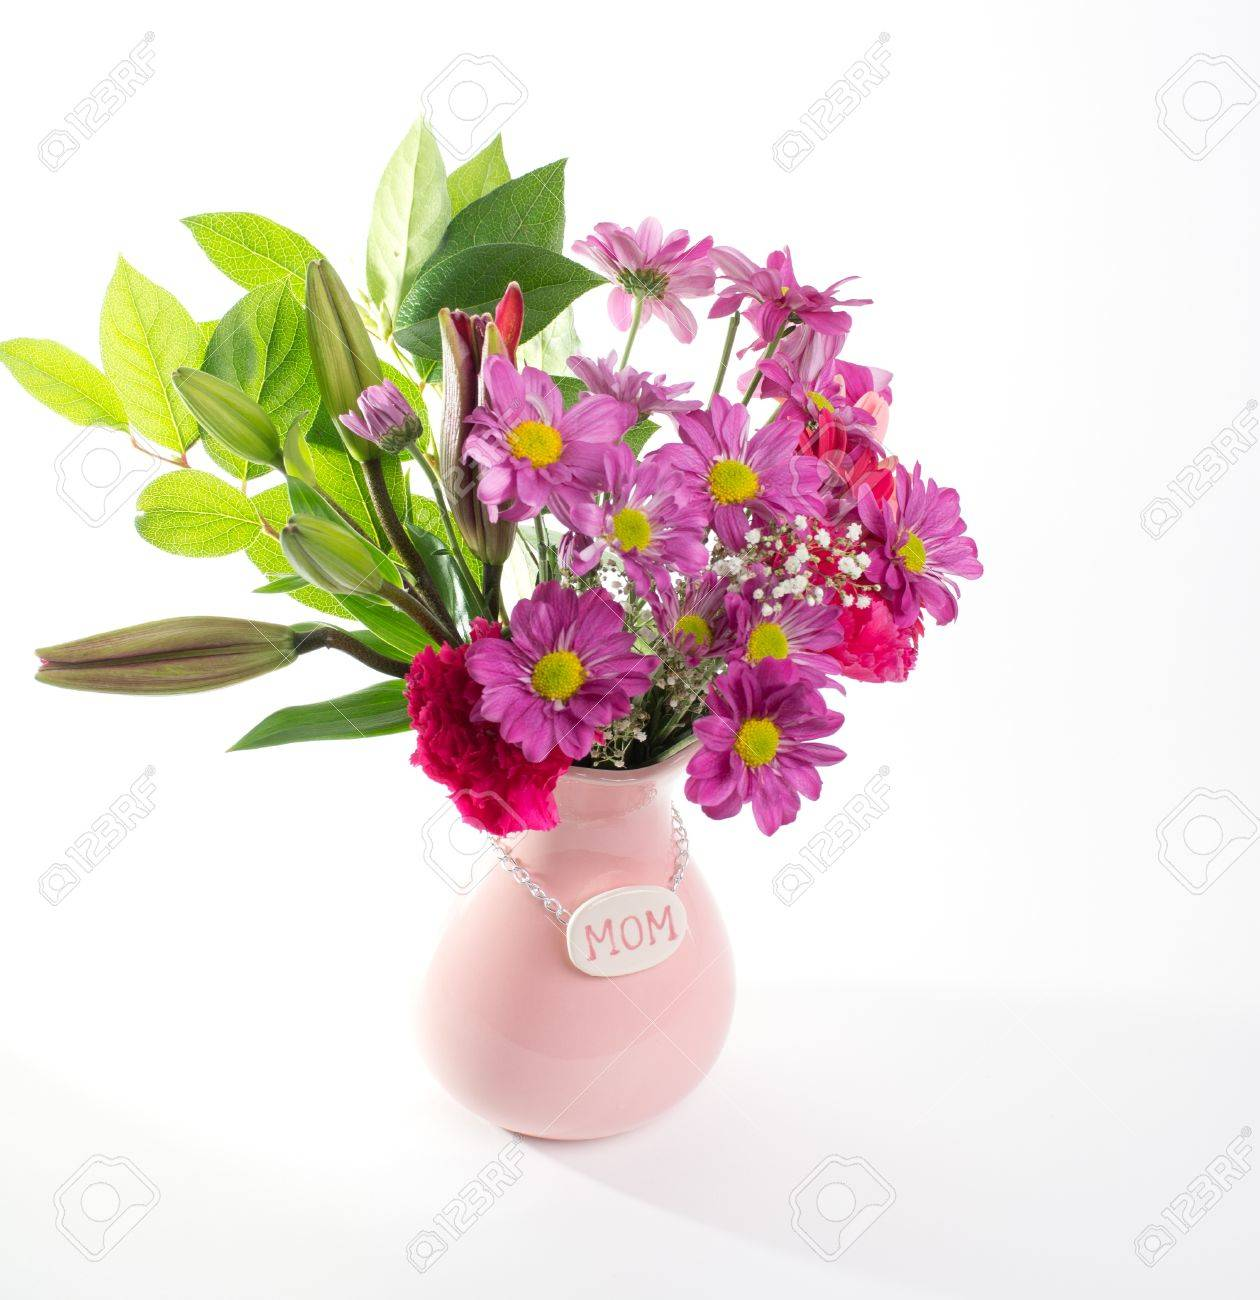 Pretty pink flowers in pink mothers day vase for mom stock photo pretty pink flowers in pink mothers day vase for mom stock photo 13947049 mightylinksfo